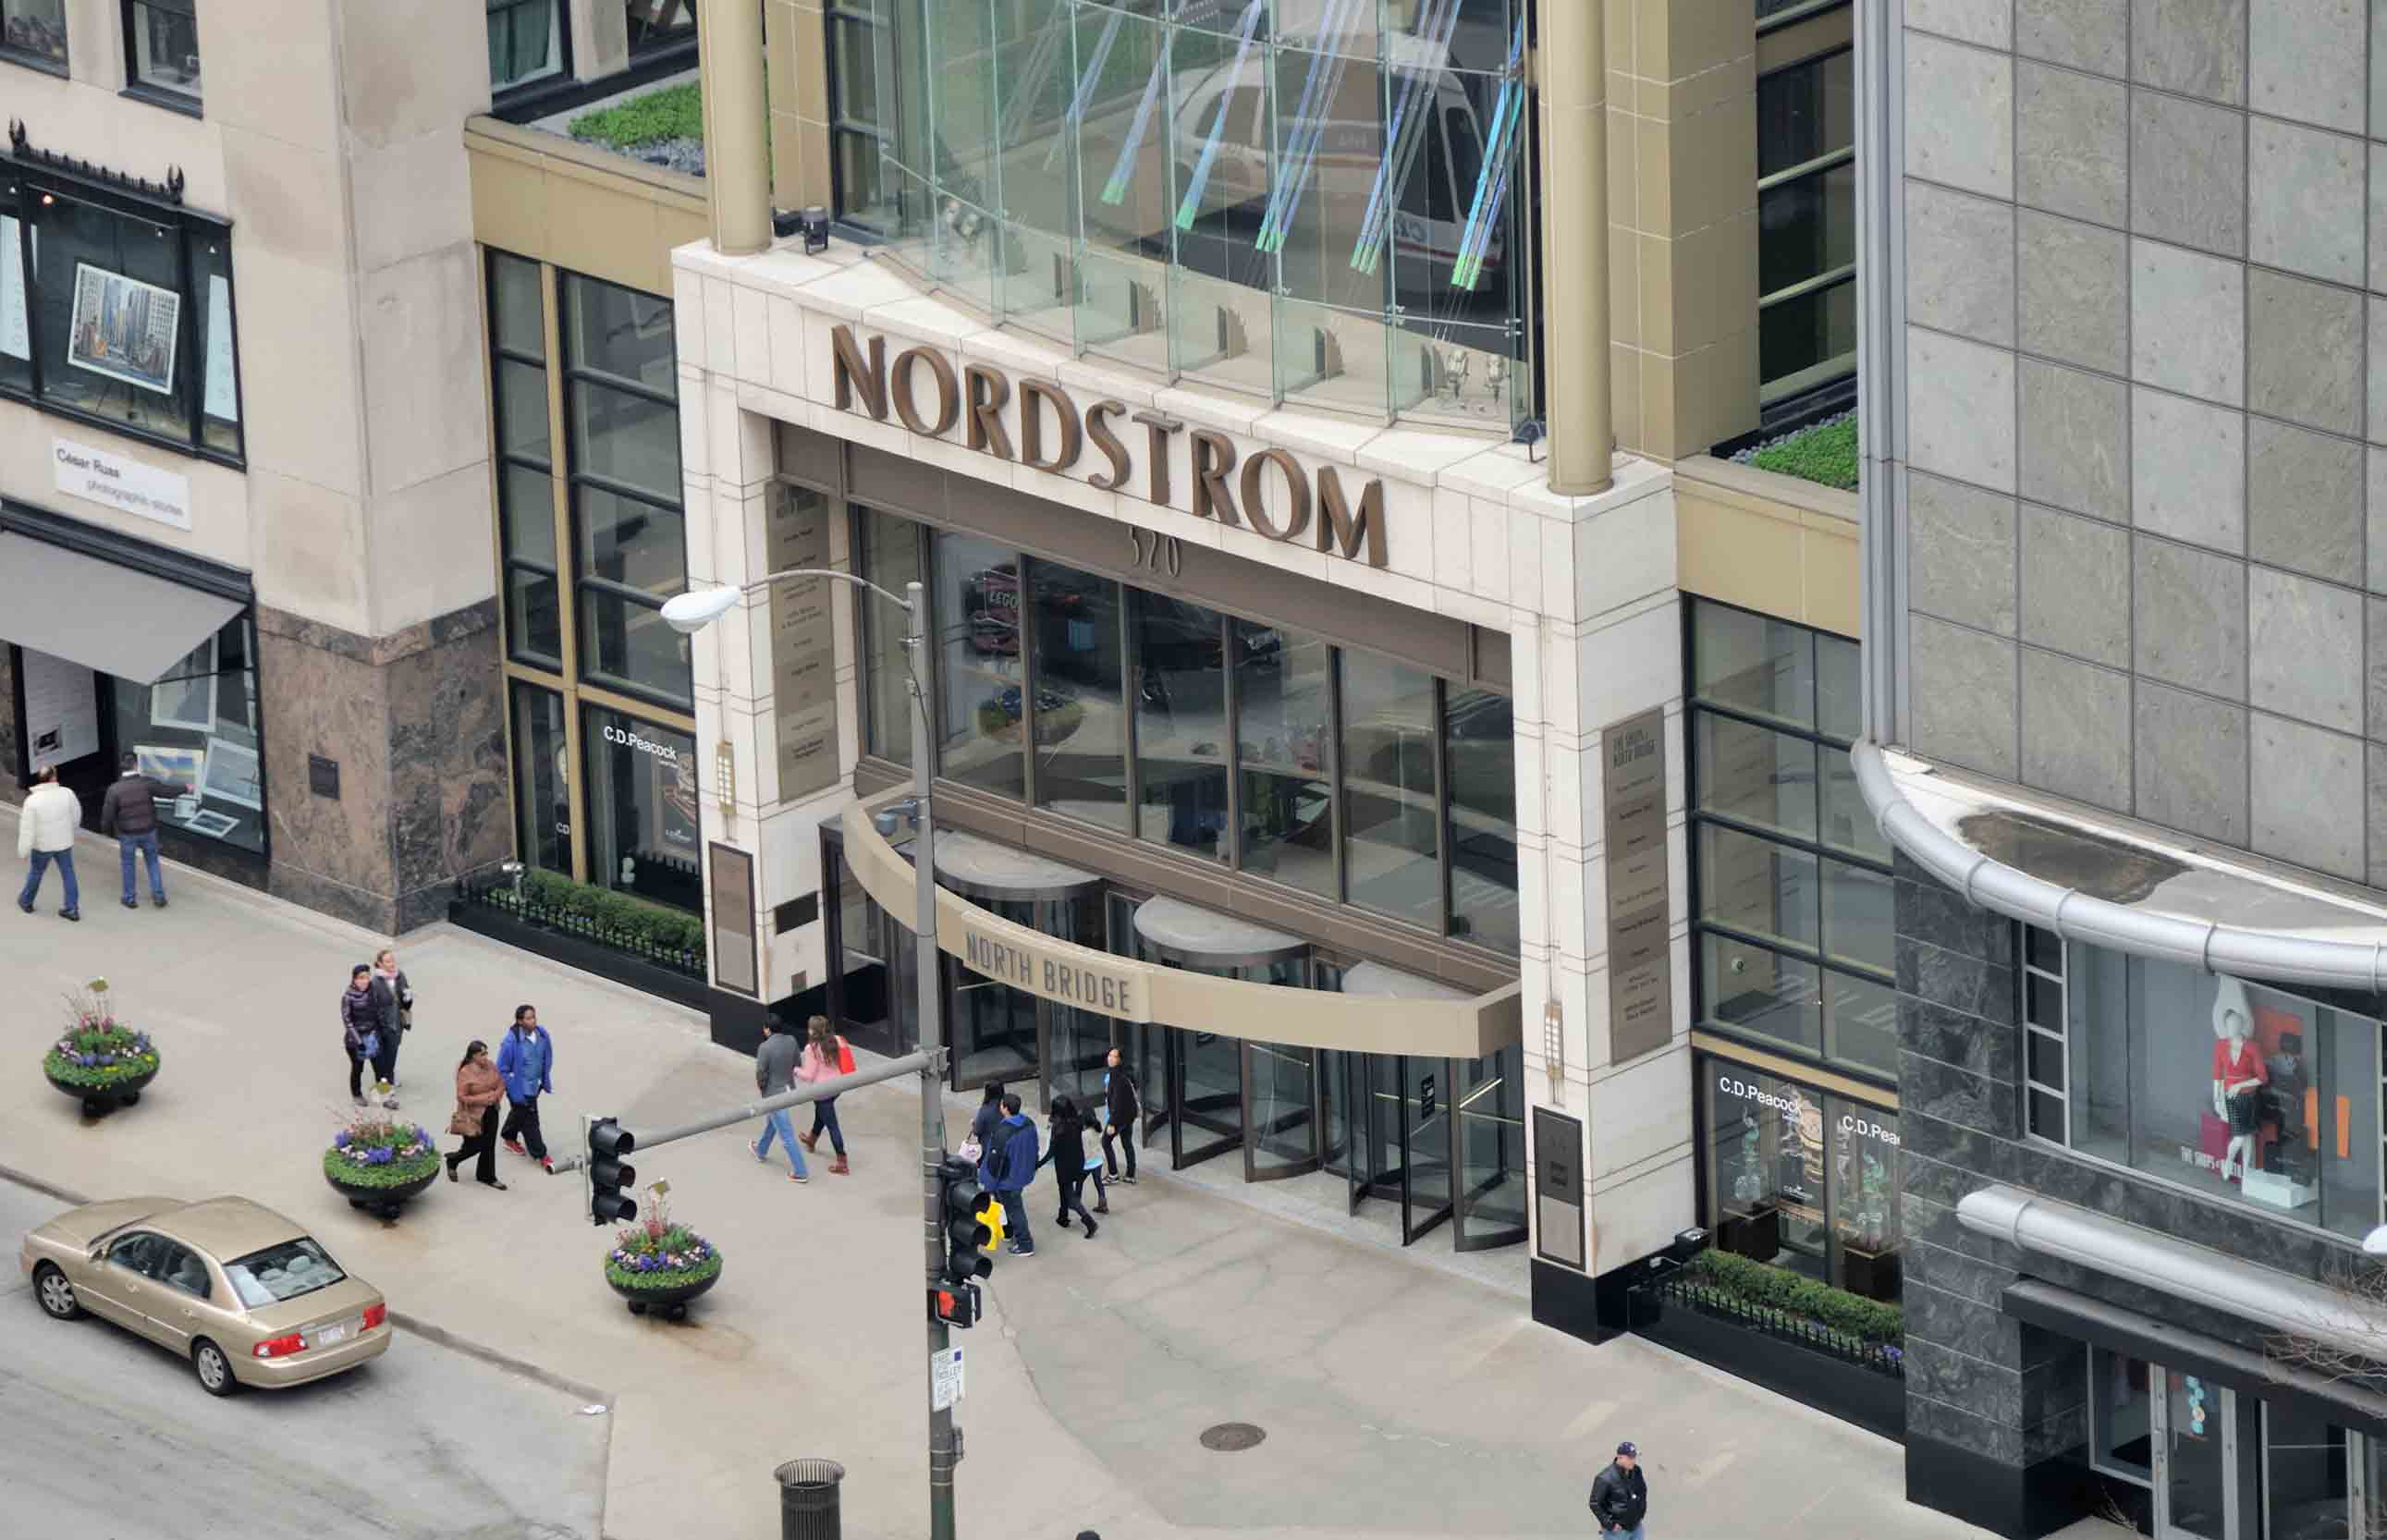 74df53ed2f3b0 19 Ways to Save at Nordstrom | Credit.com